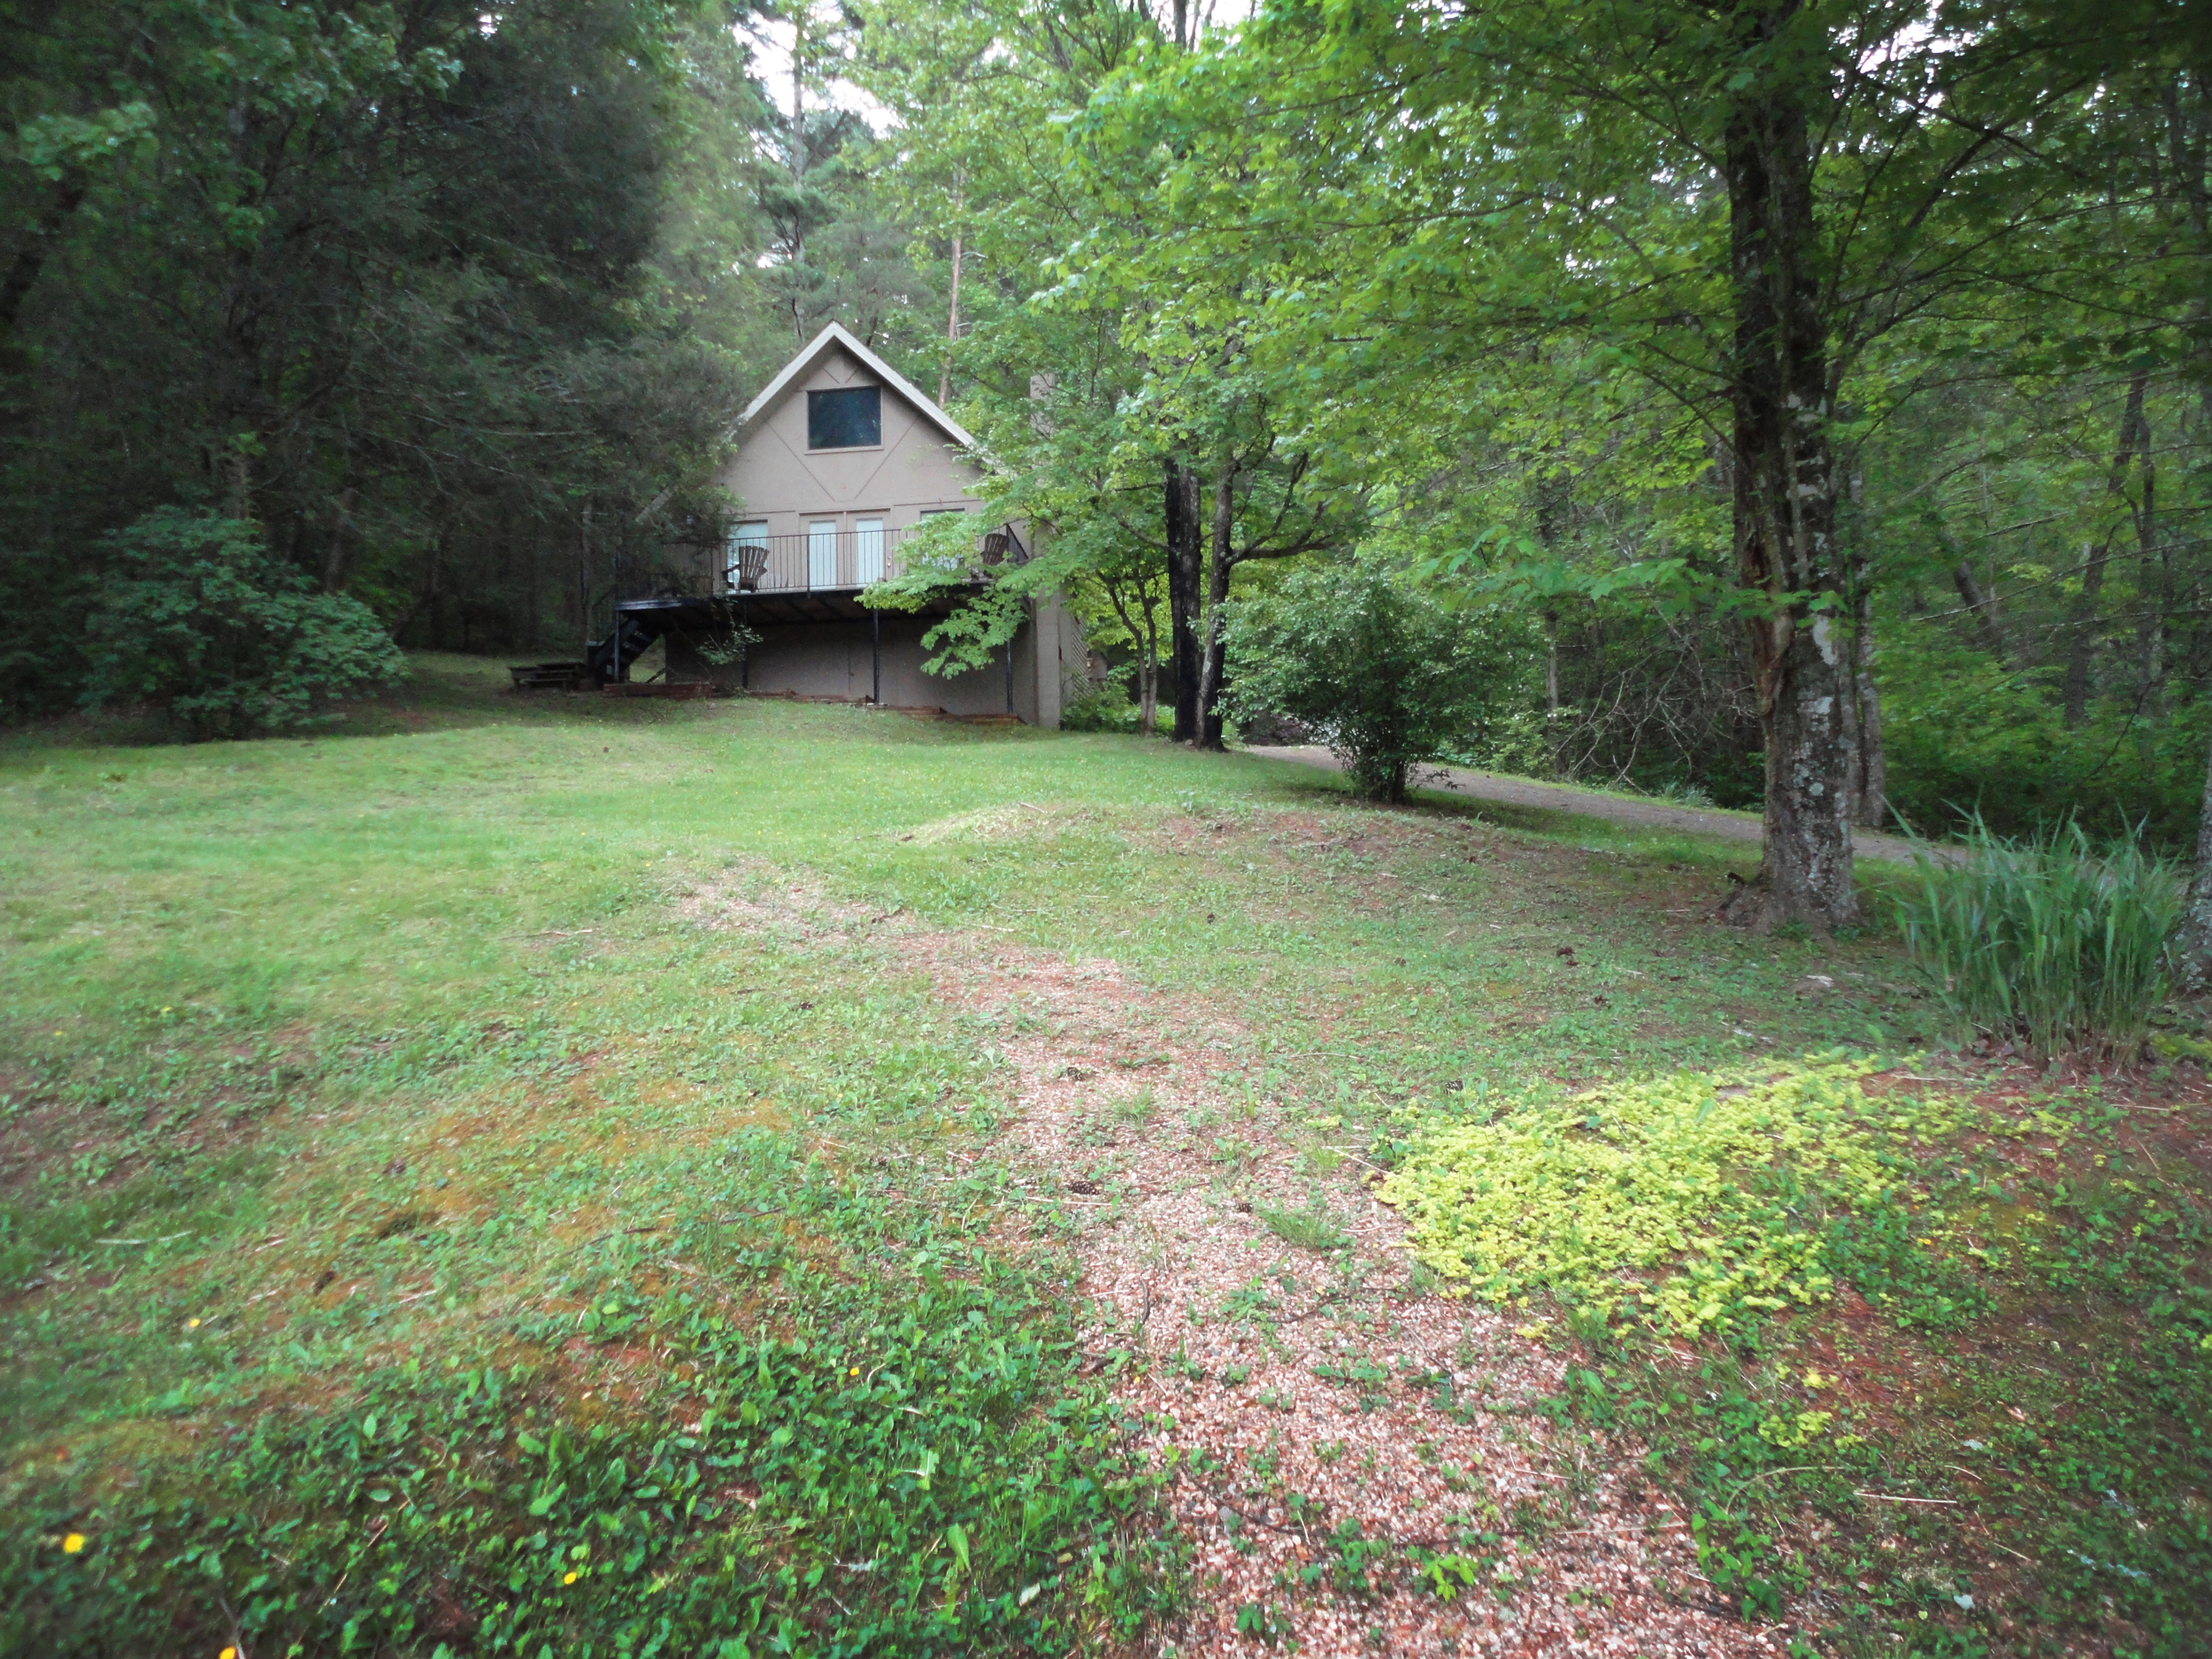 cabin cabins of va gardens rentals virginia busch richmond luray koa williamsburg x talentneeds photo area com accommodations